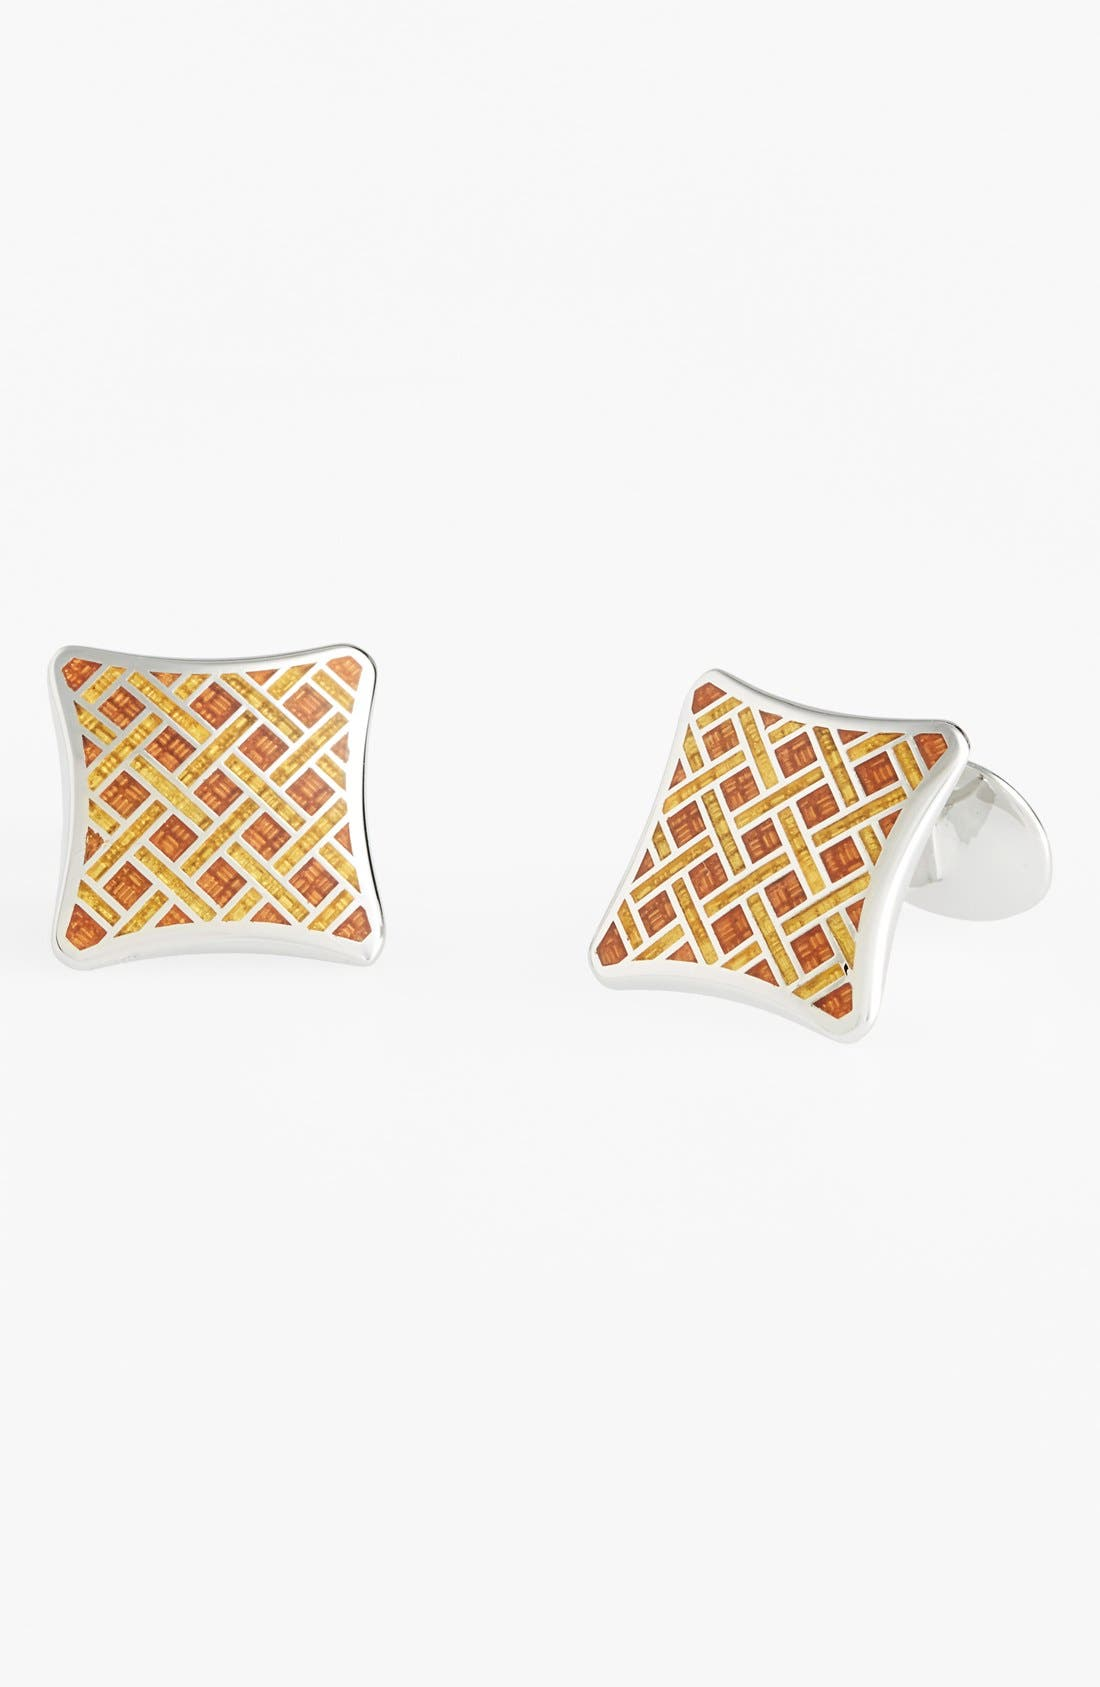 Enamel & Sterling Silver Cuff Links,                             Main thumbnail 1, color,                             040